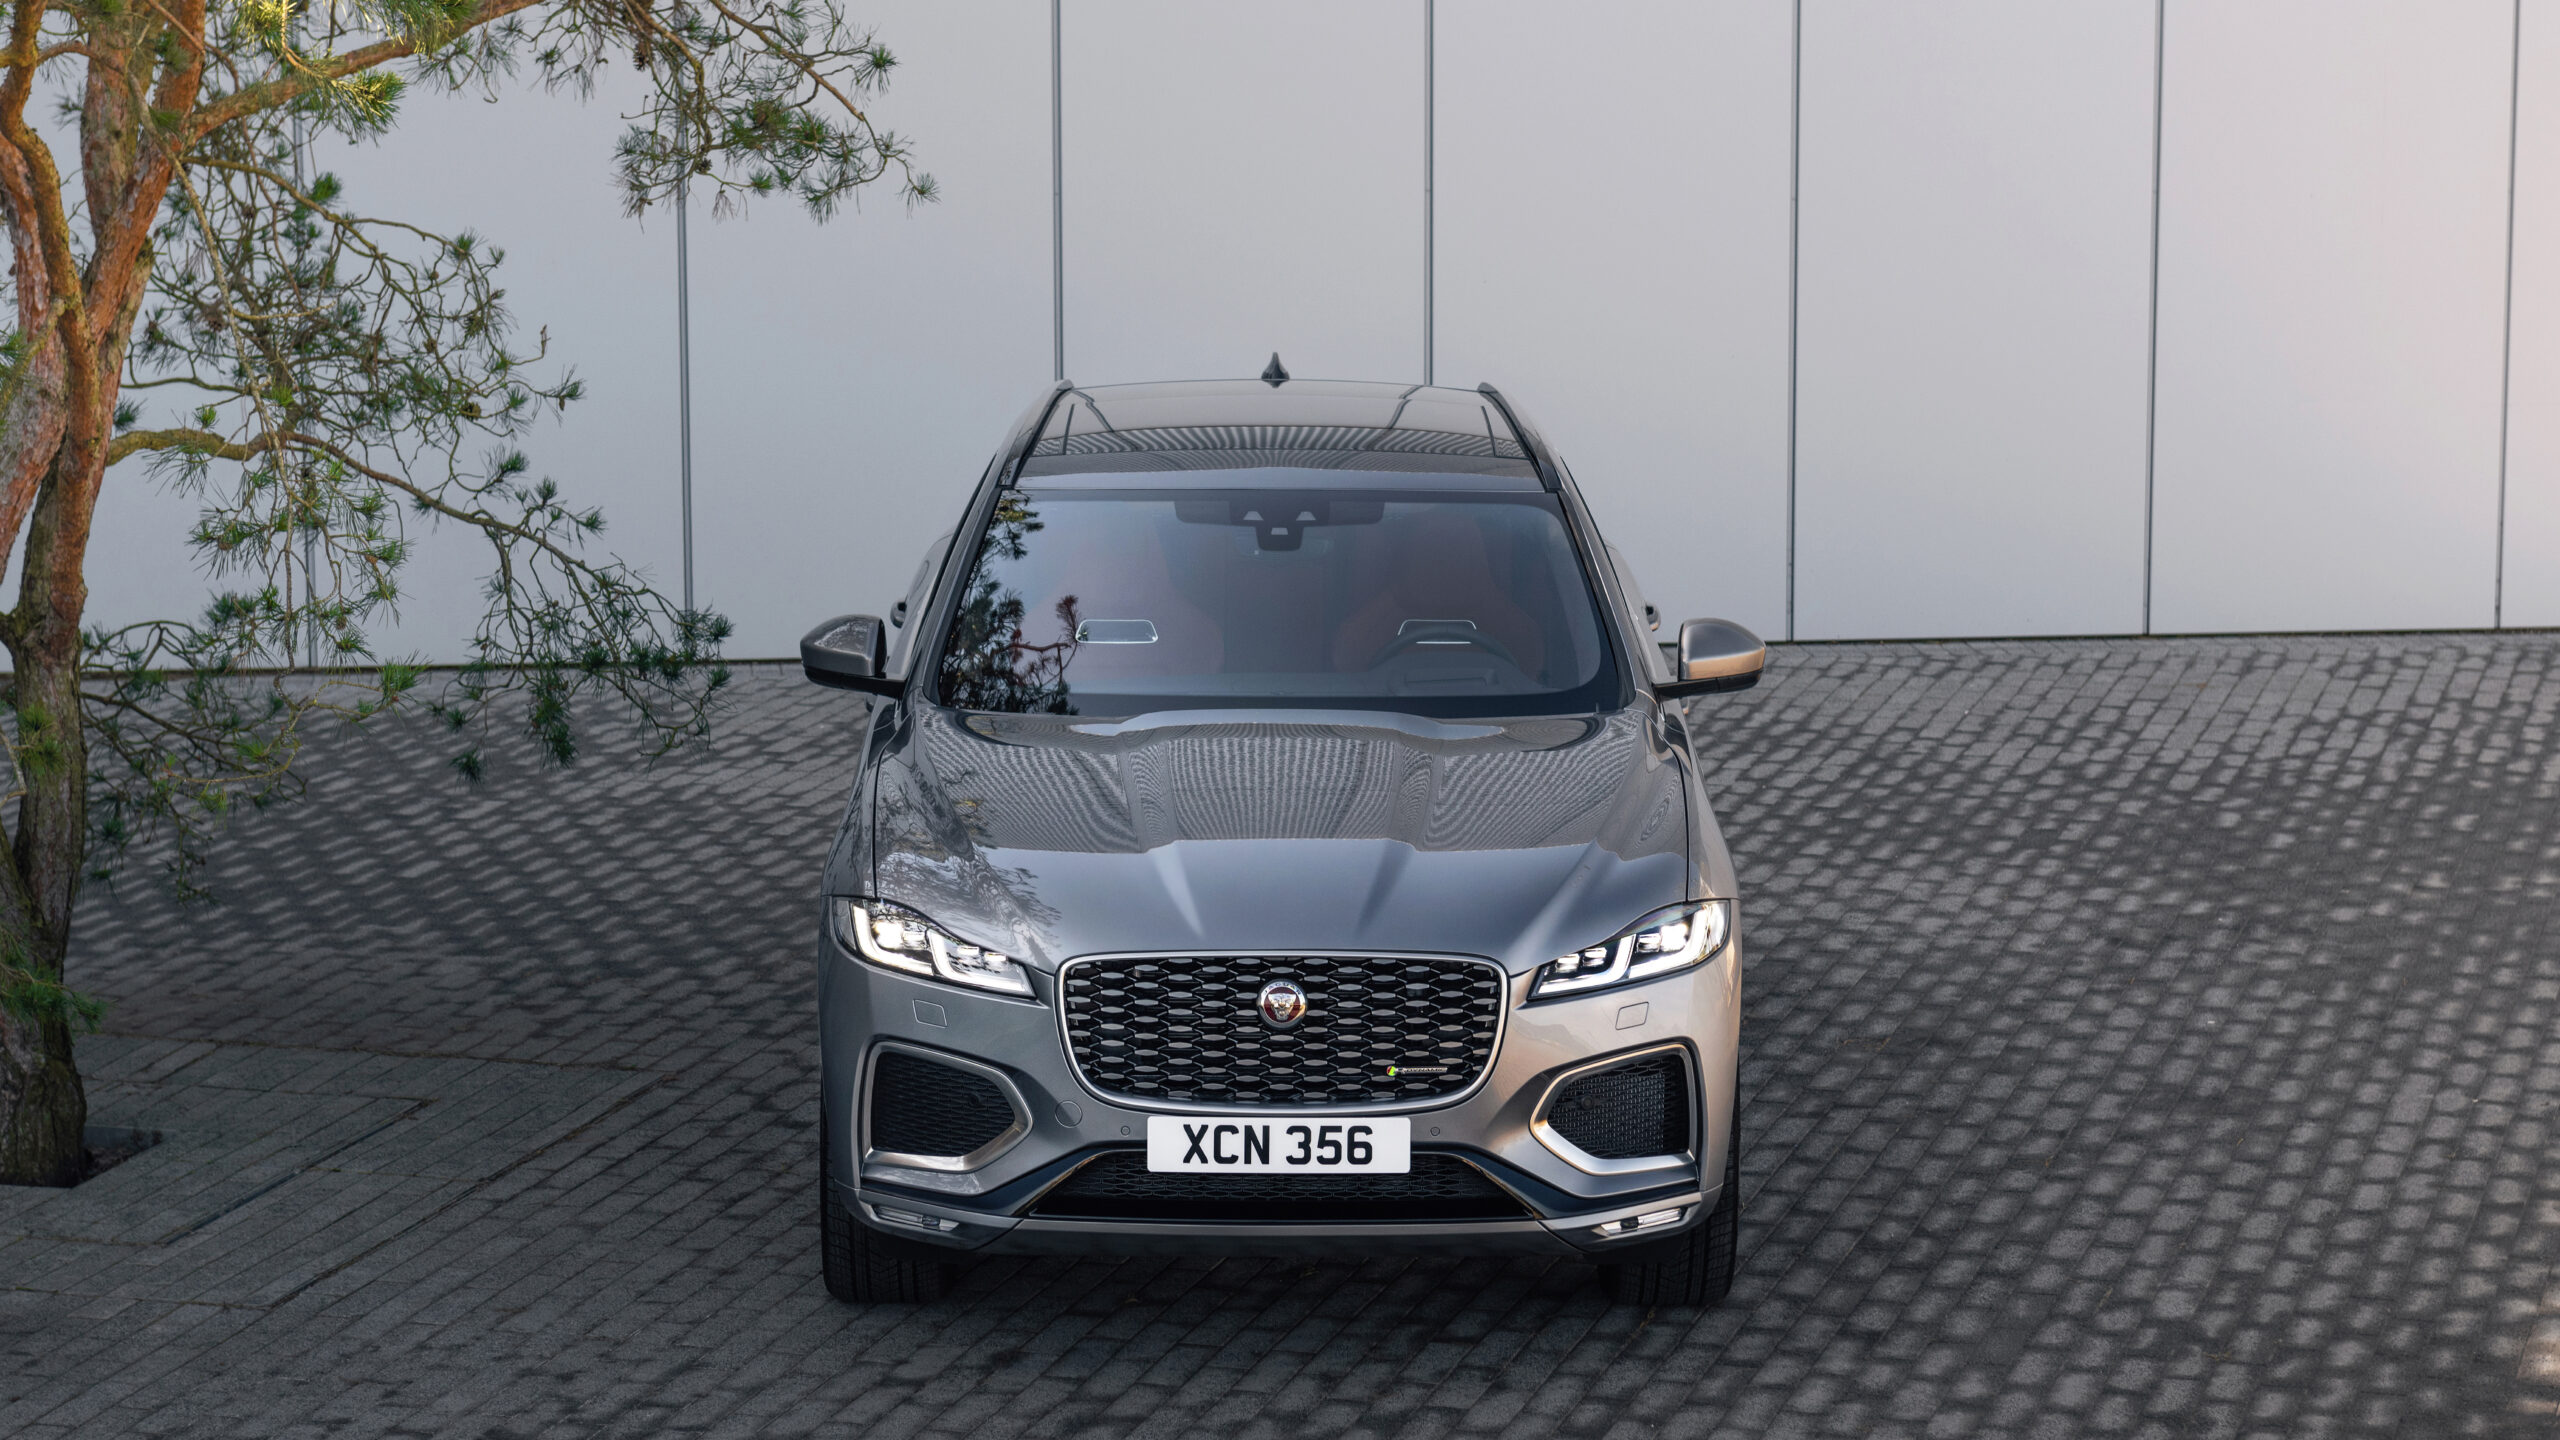 2021 Jaguar F-Pace front part